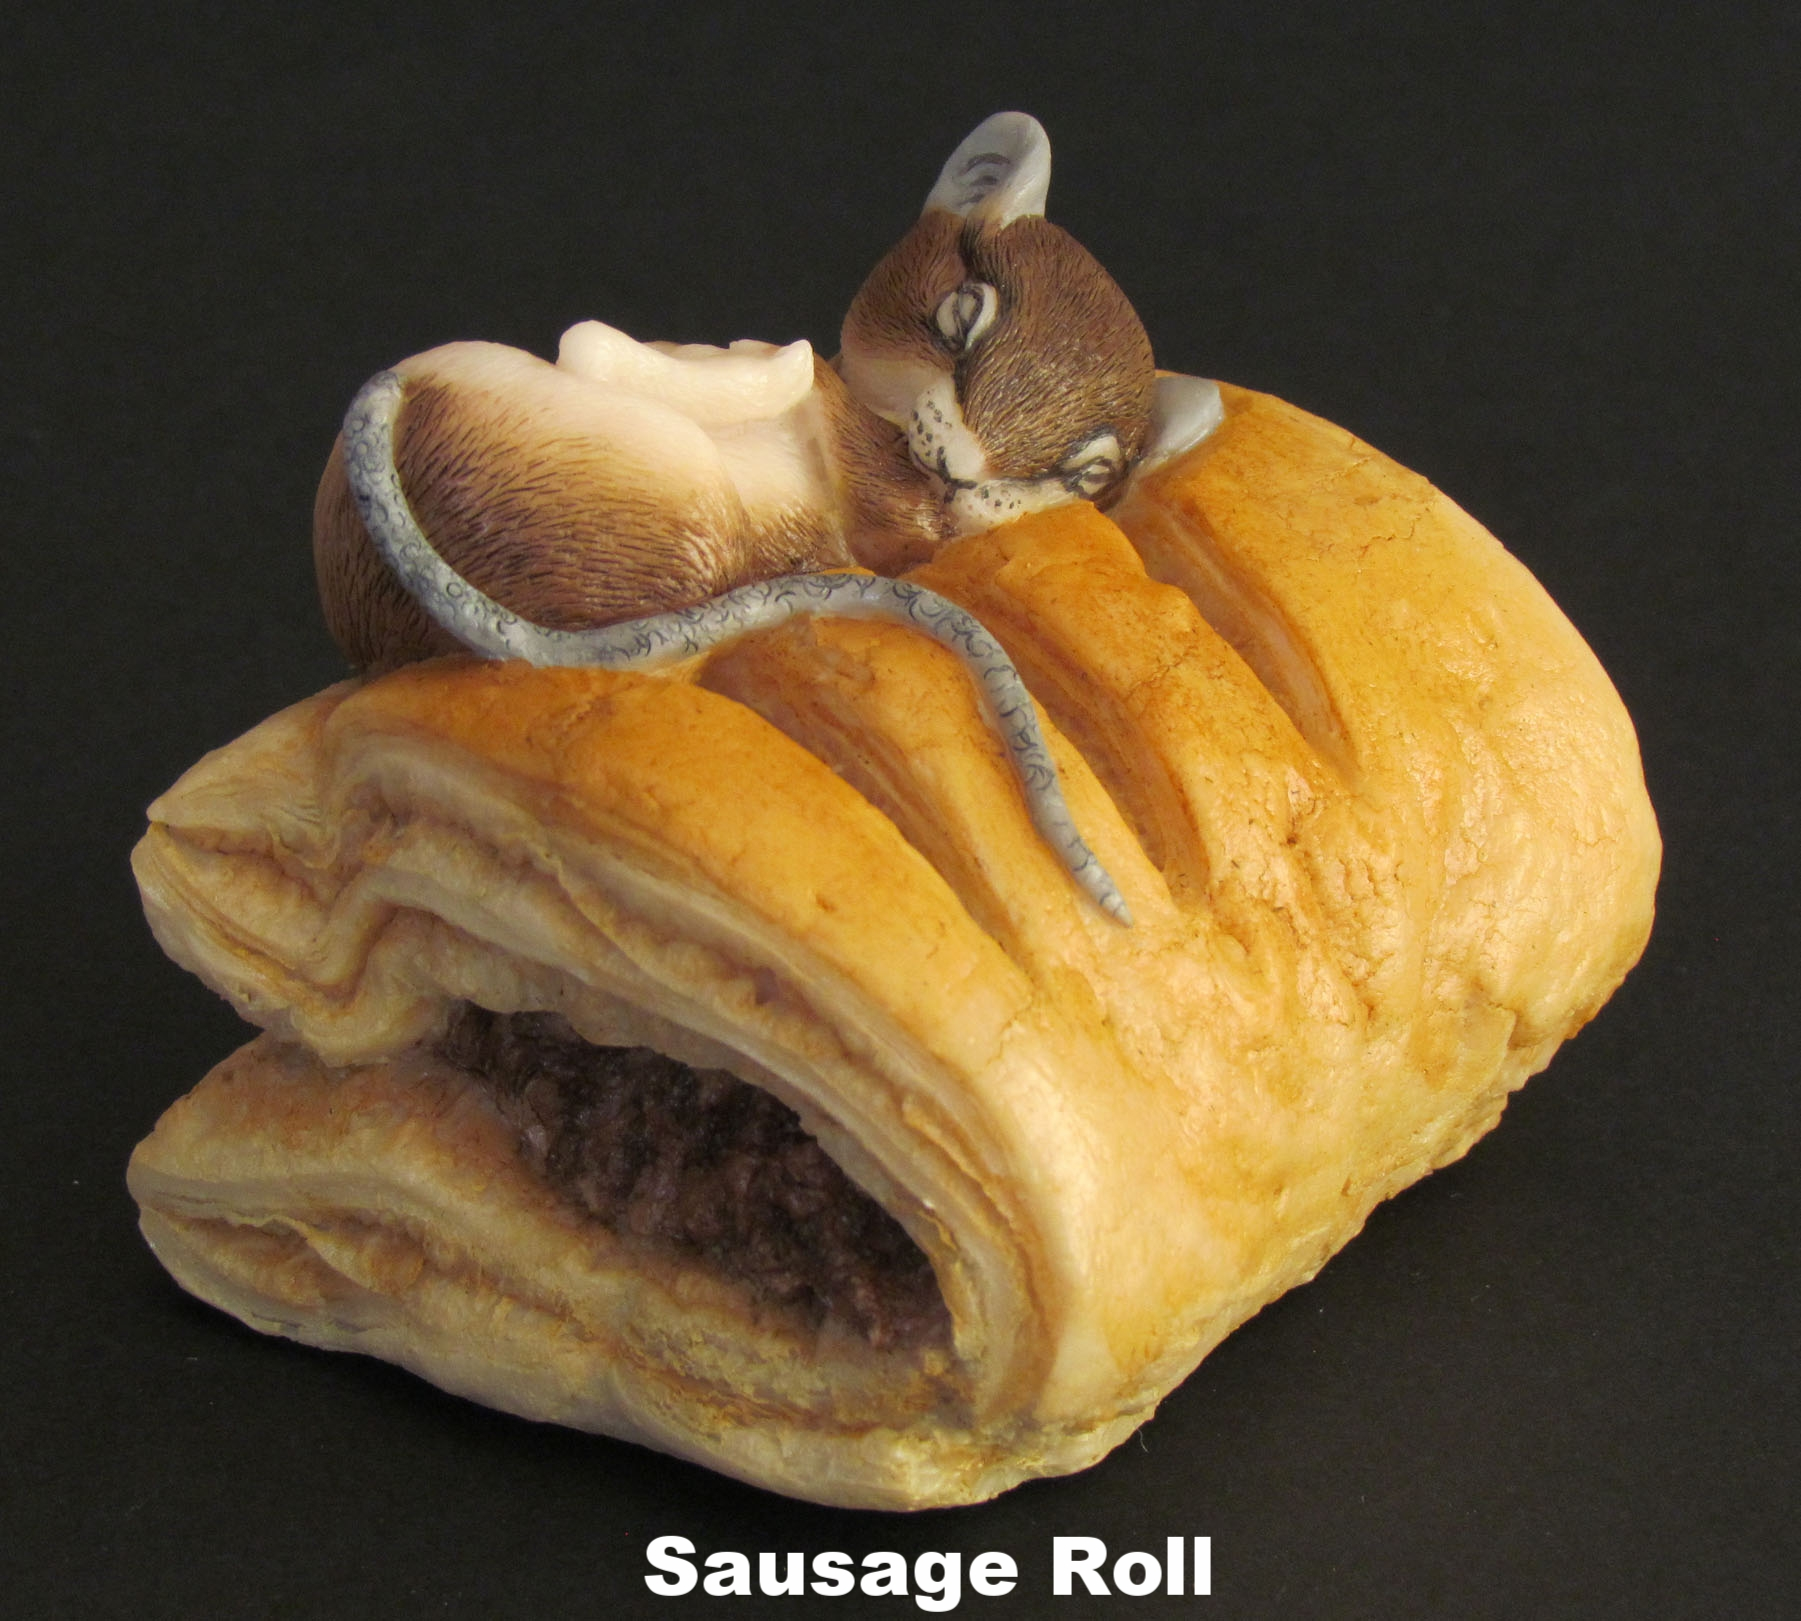 Mouse on Sausage Roll 1.jpg